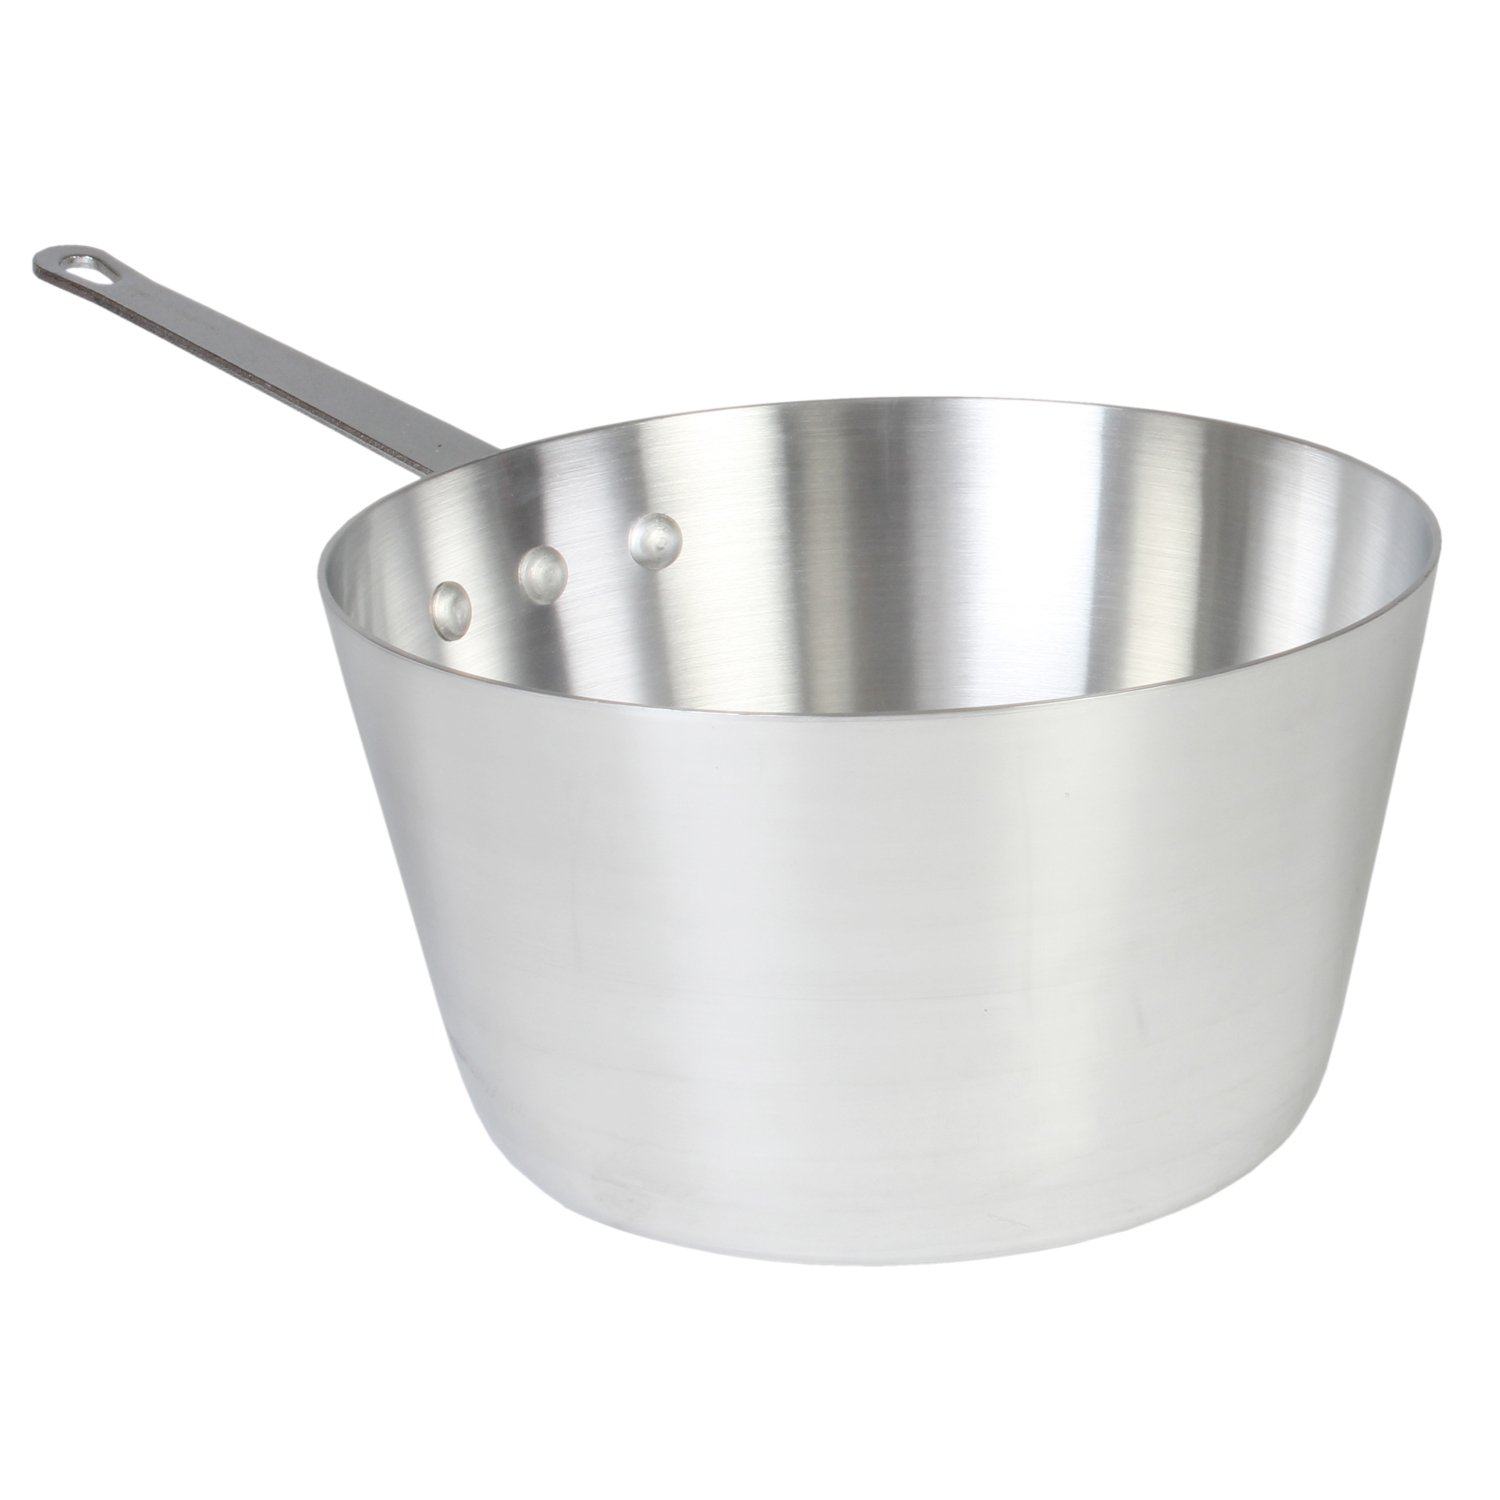 Thunder Group 5.5 Quart Aluminum Sauce Pans, Mirror Finish